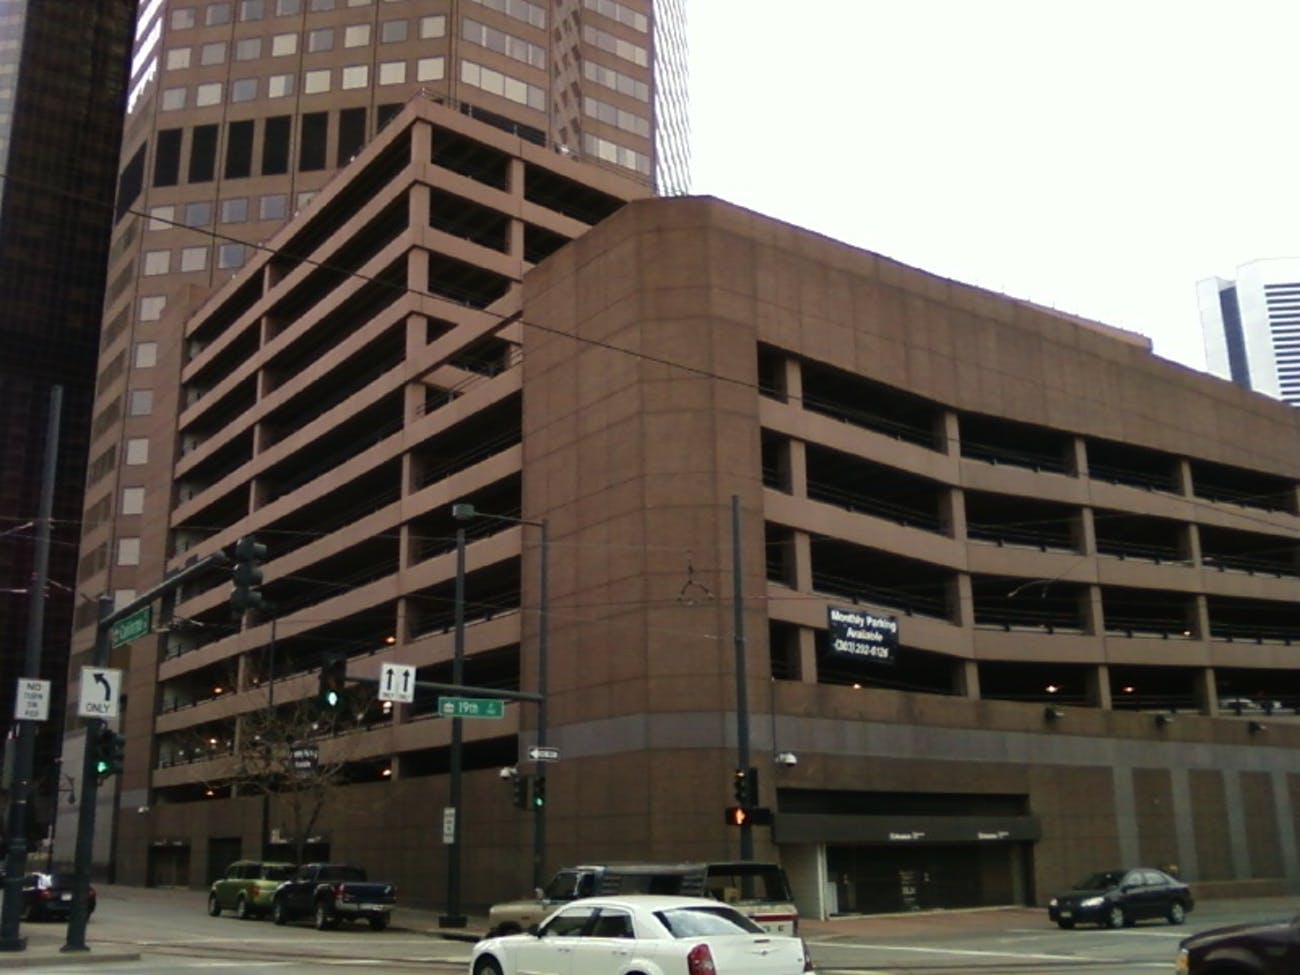 A parking garage in Denver. It sure looks like something!